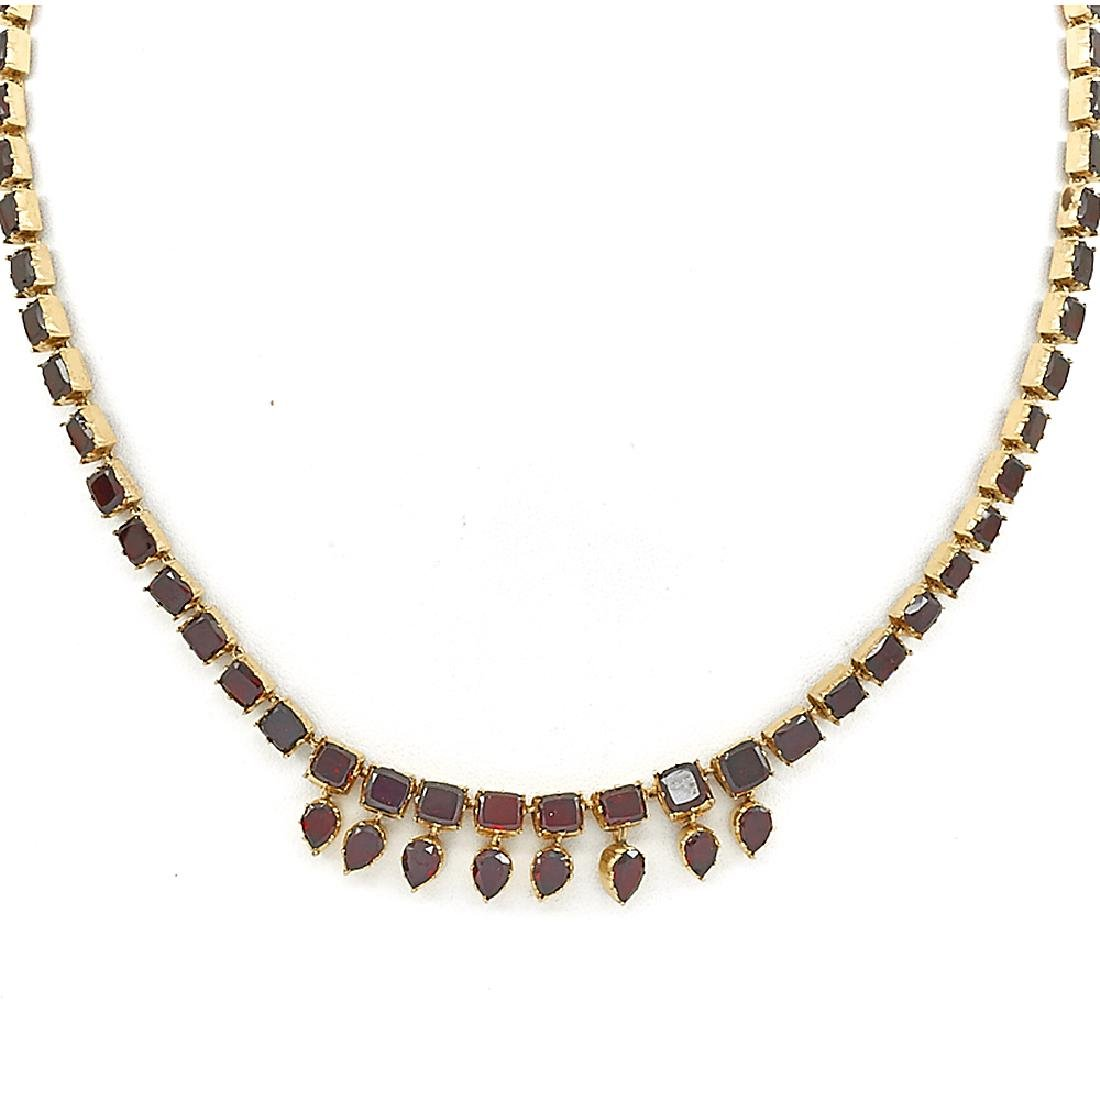 9K Yellow gold & garnet Victorian necklace